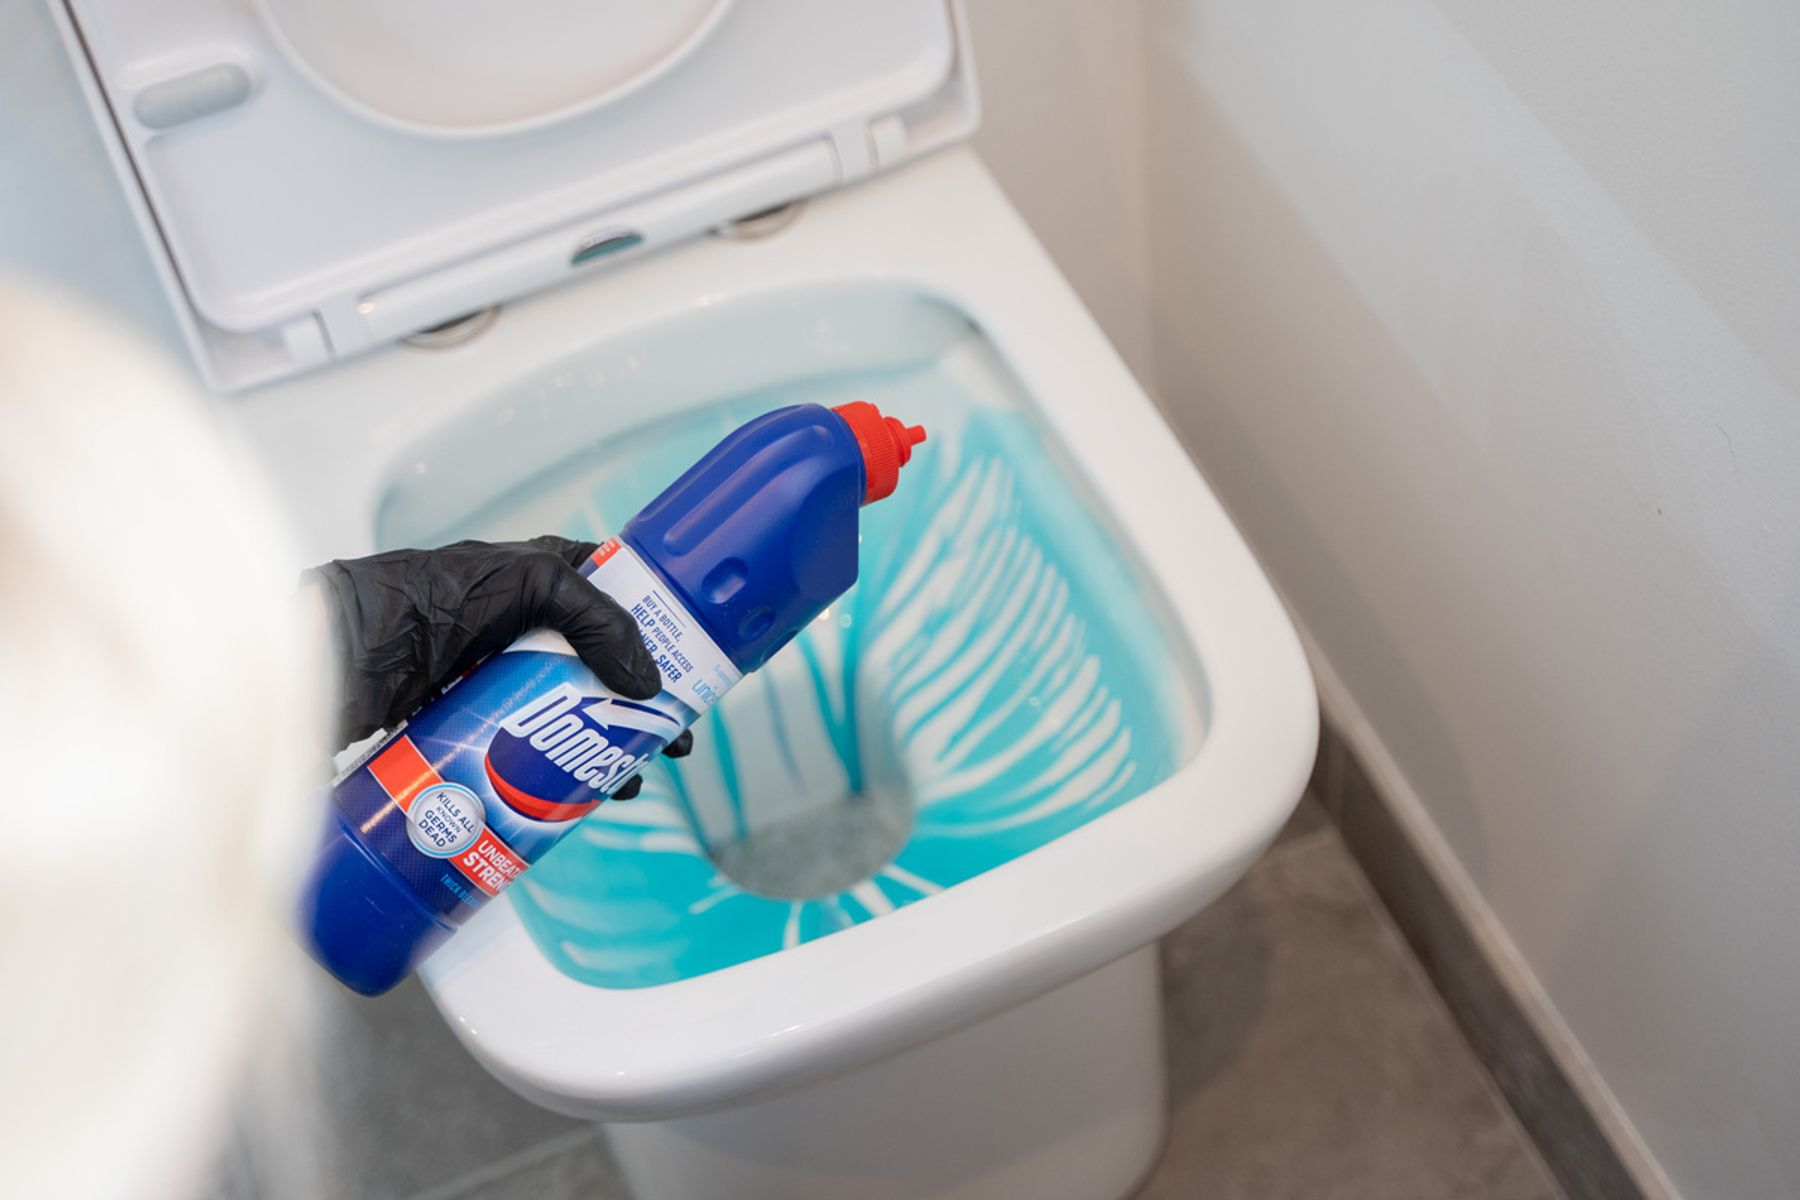 Step 1: Domestos being poured into a toilet bowl